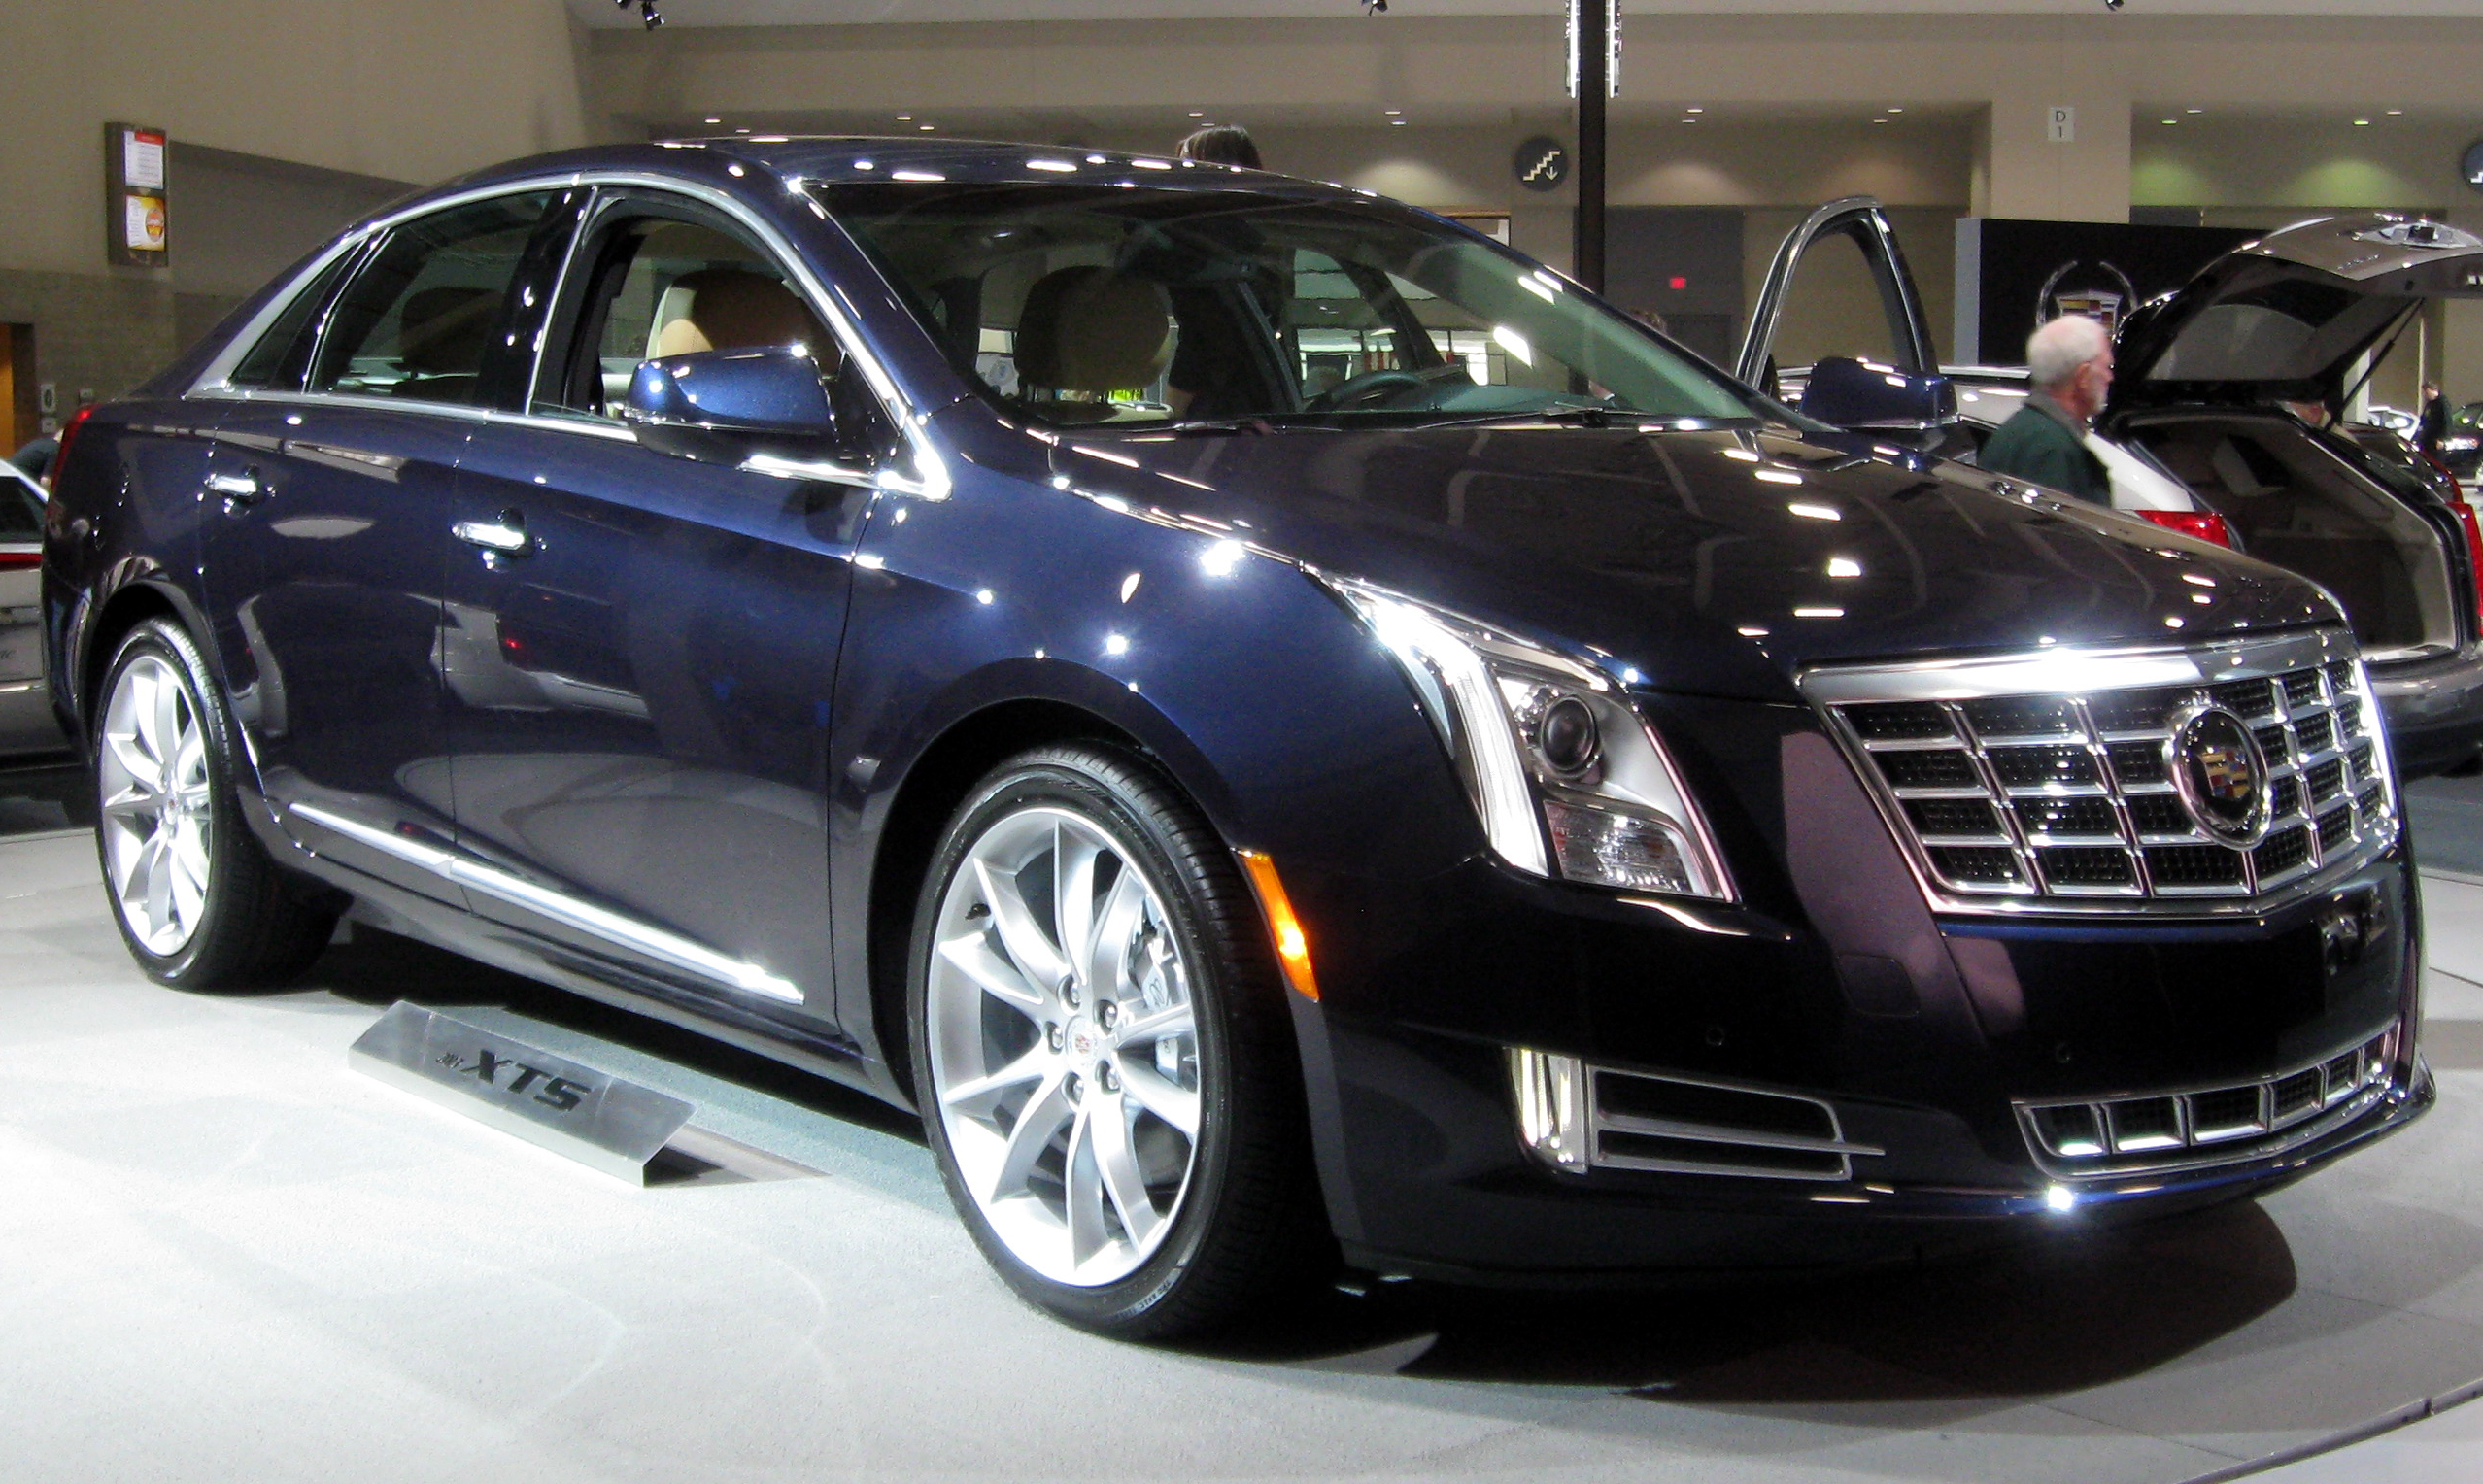 cadillac cts reviews updates of download and rating car image